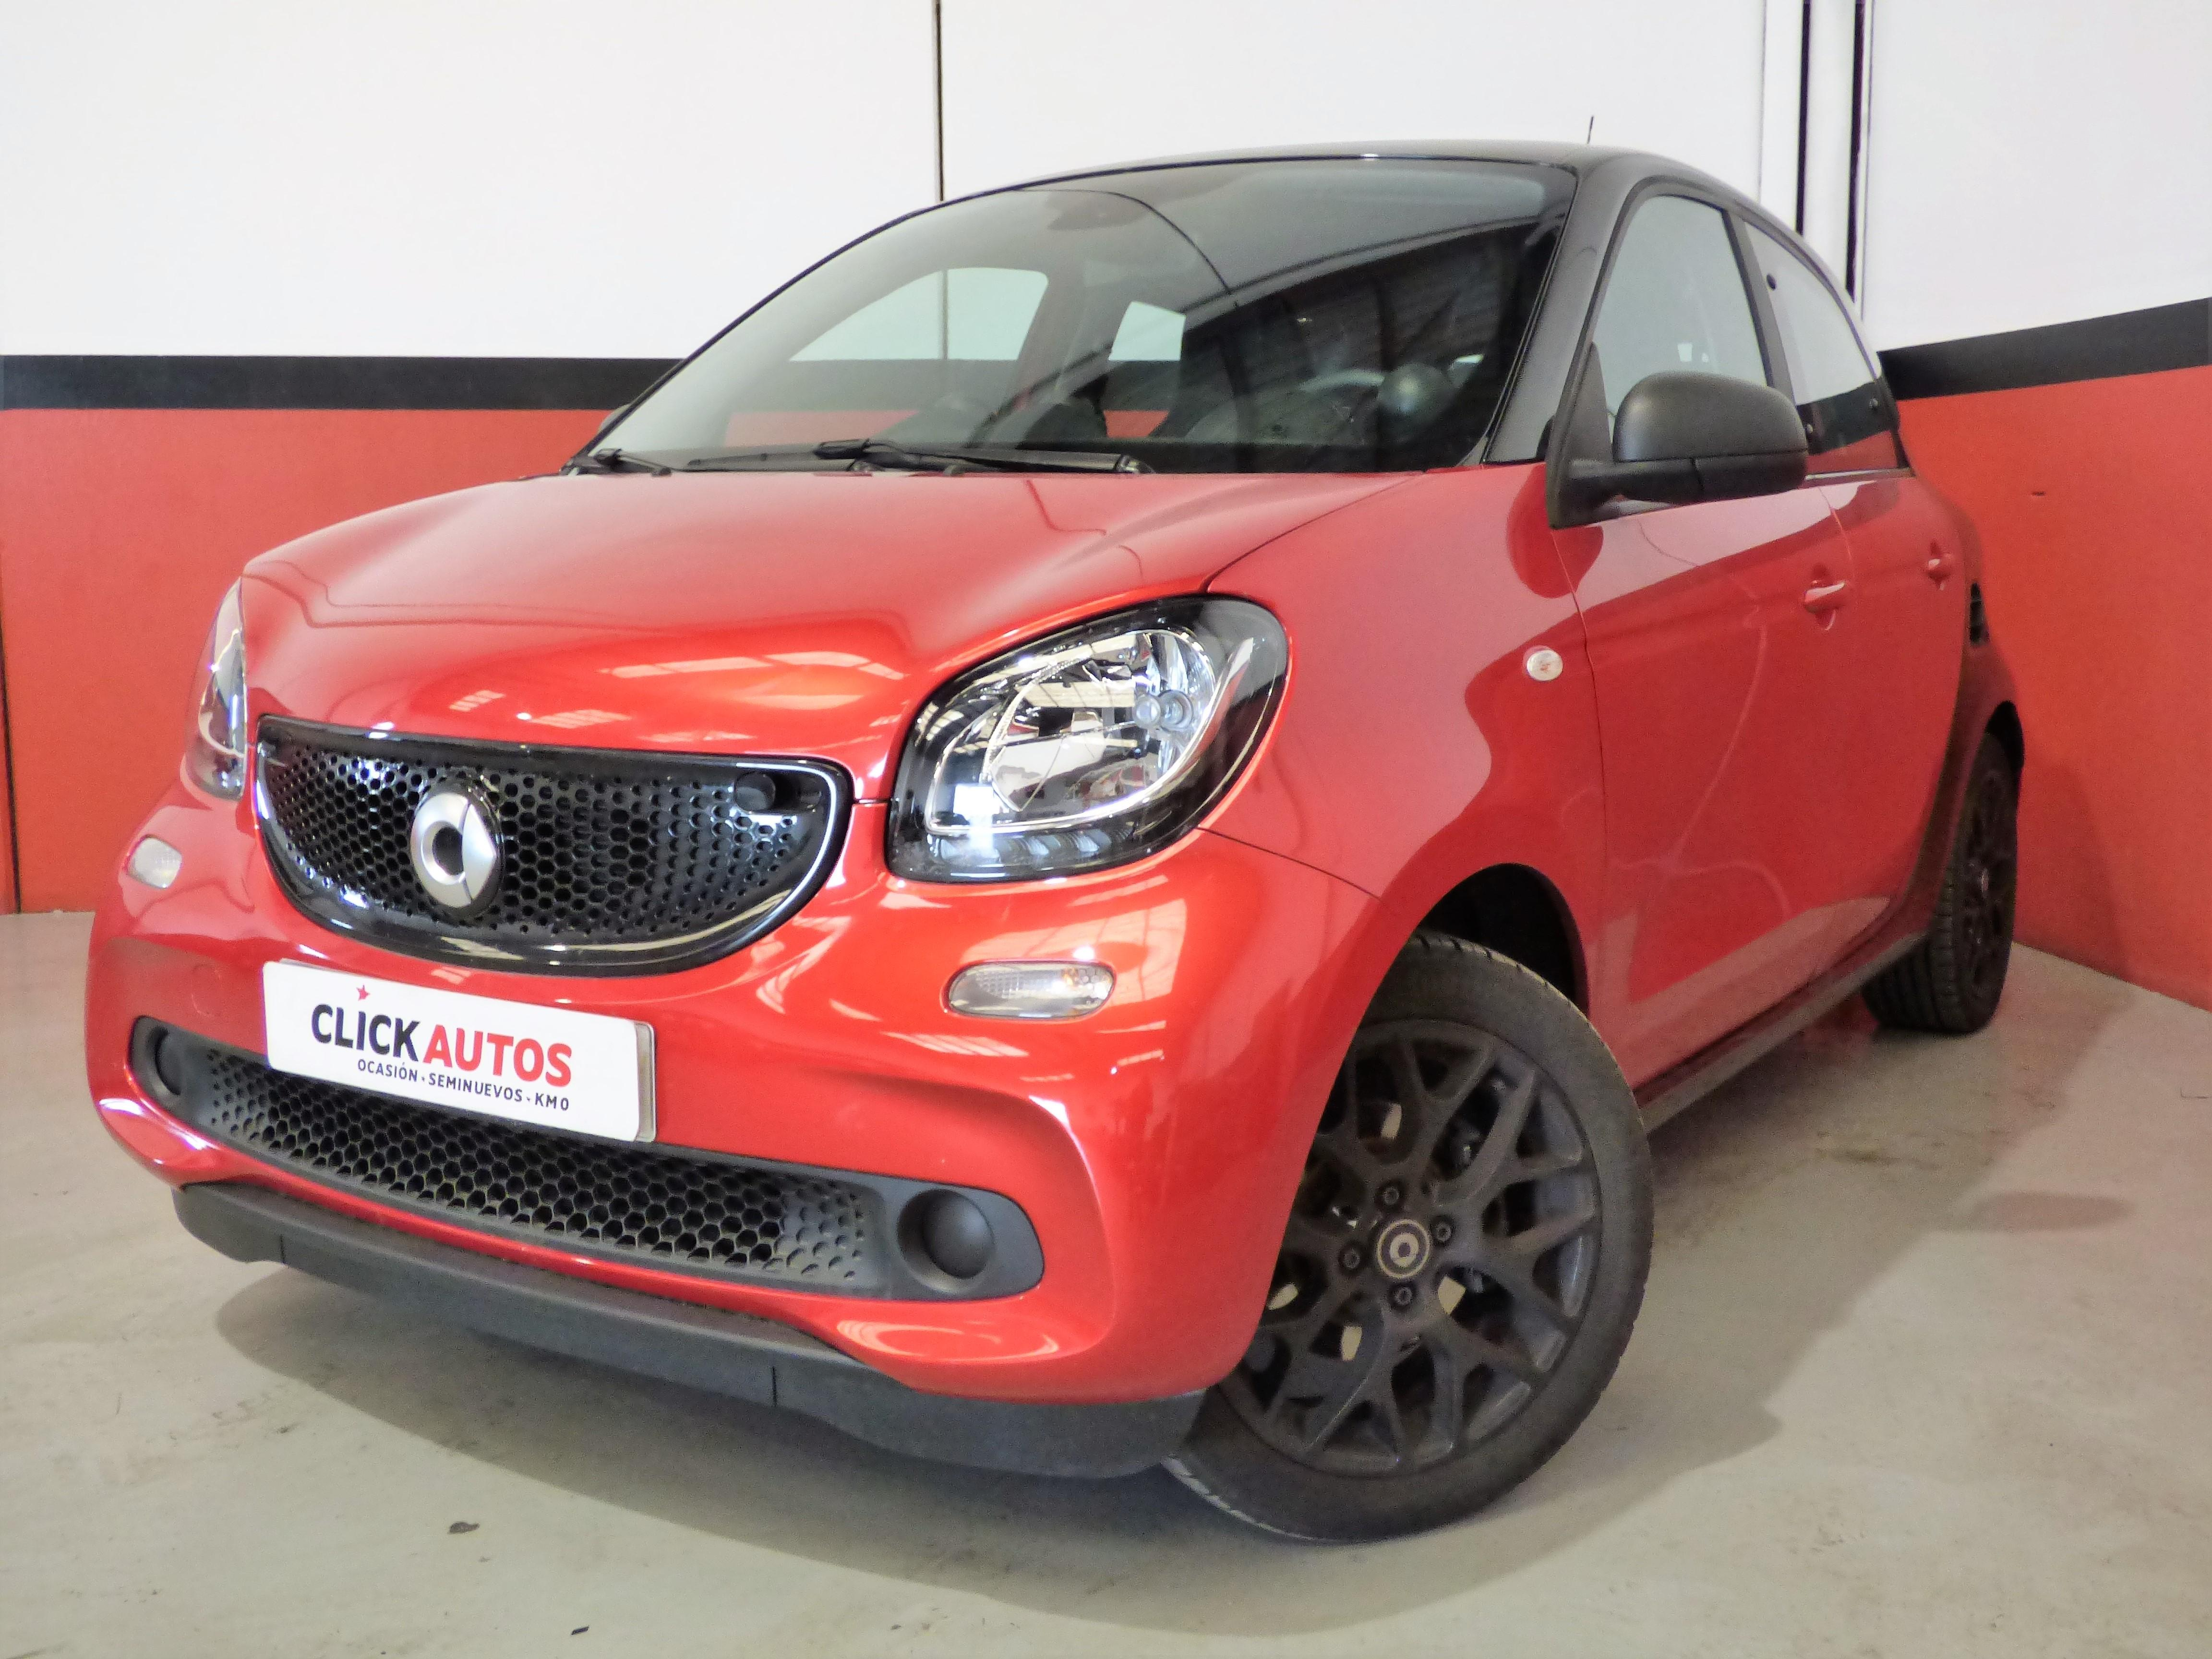 Forfour 0.9 Turbo 90CV Automatico Passion 0